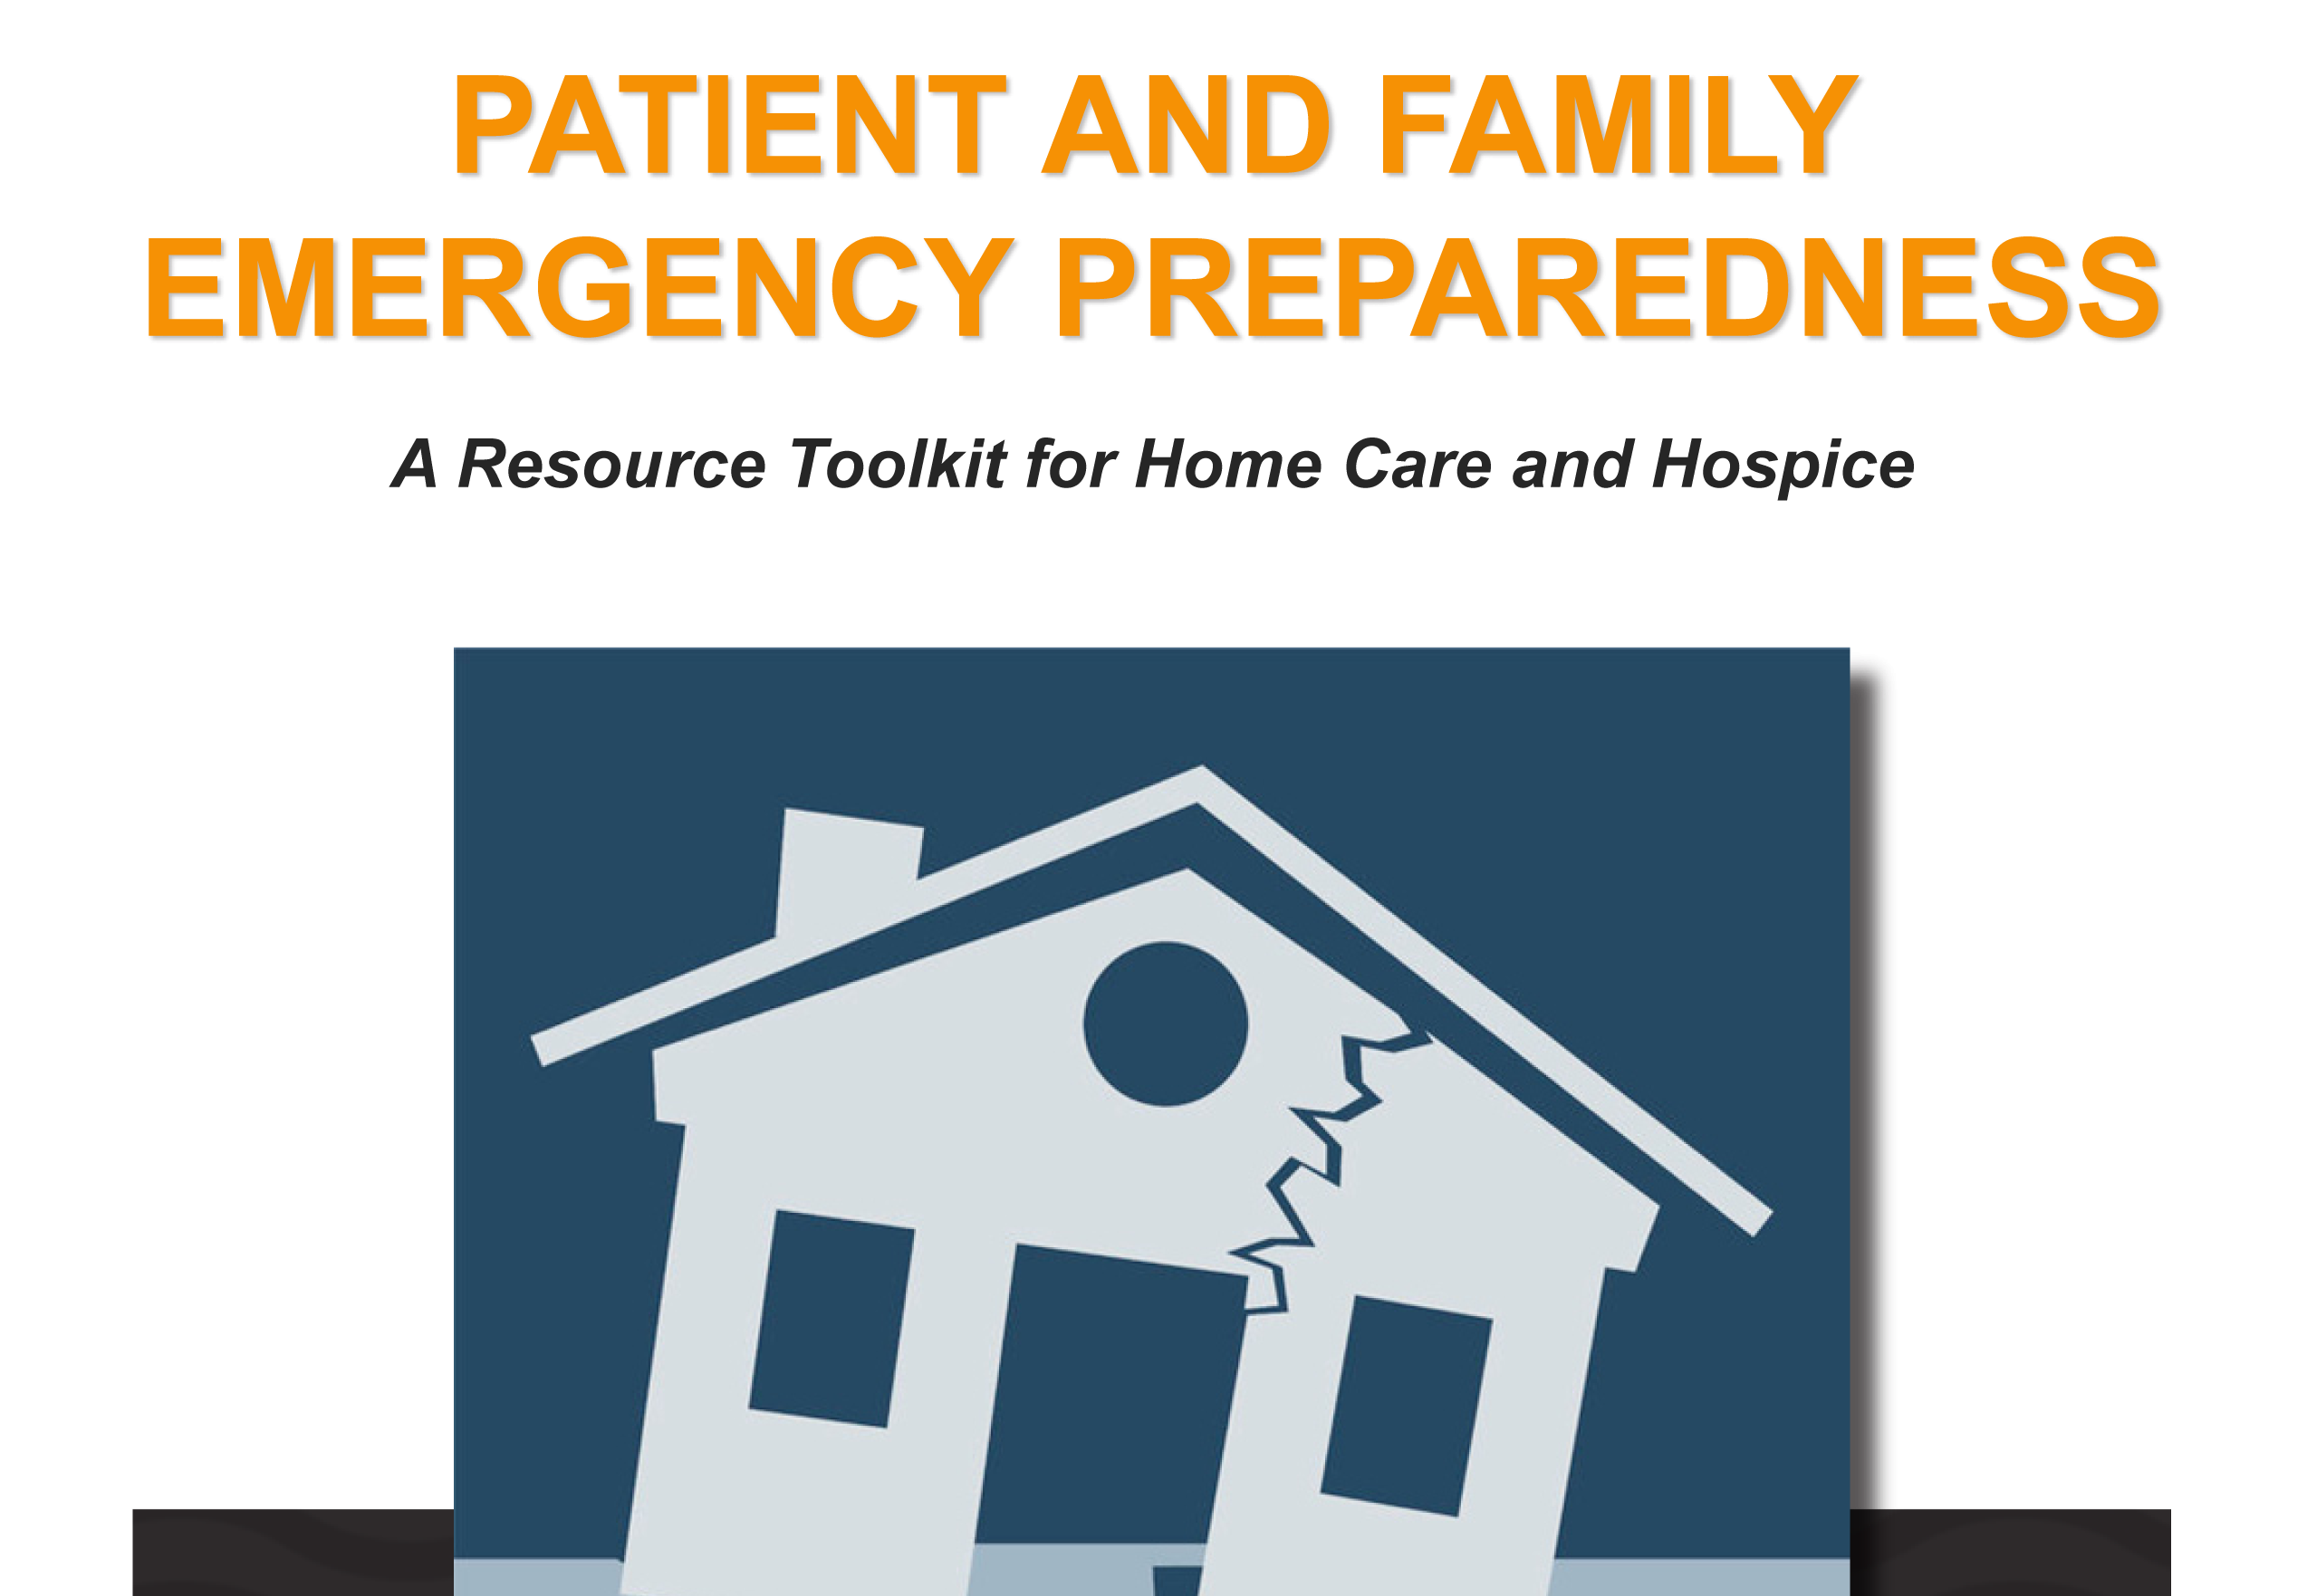 Home Care Emergency Preparedness Toolkit